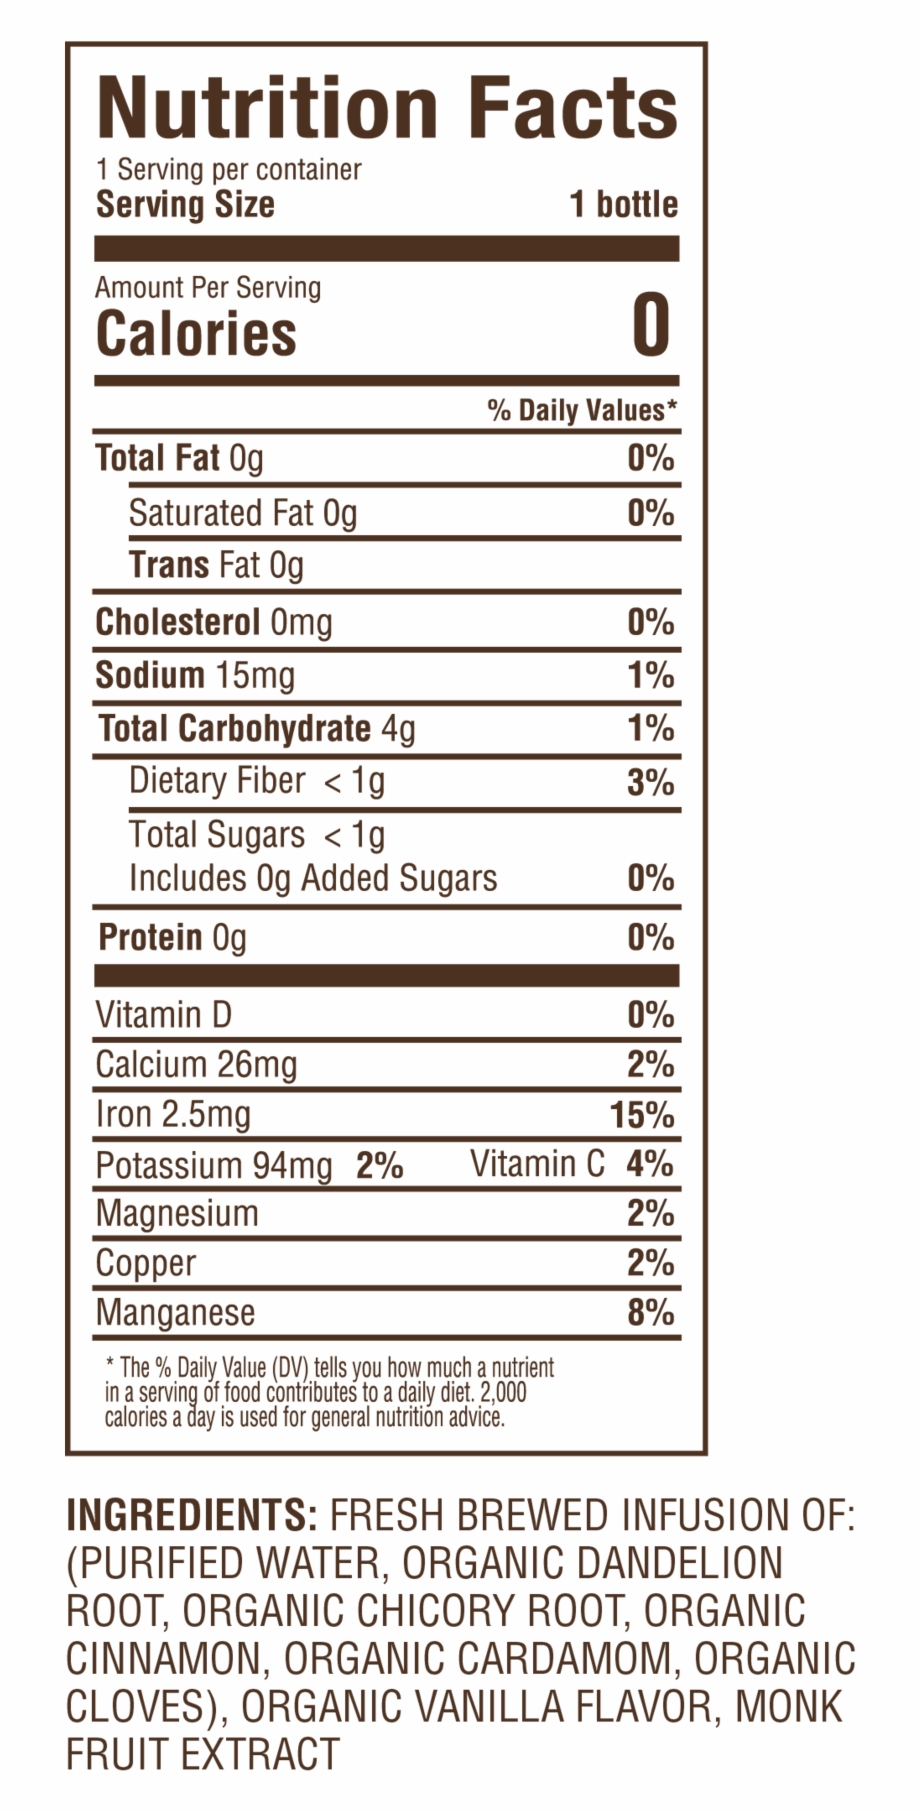 Nutrition Dandelion 01 Download Nutrition Facts Png Transparent Png Download 5372825 Vippng